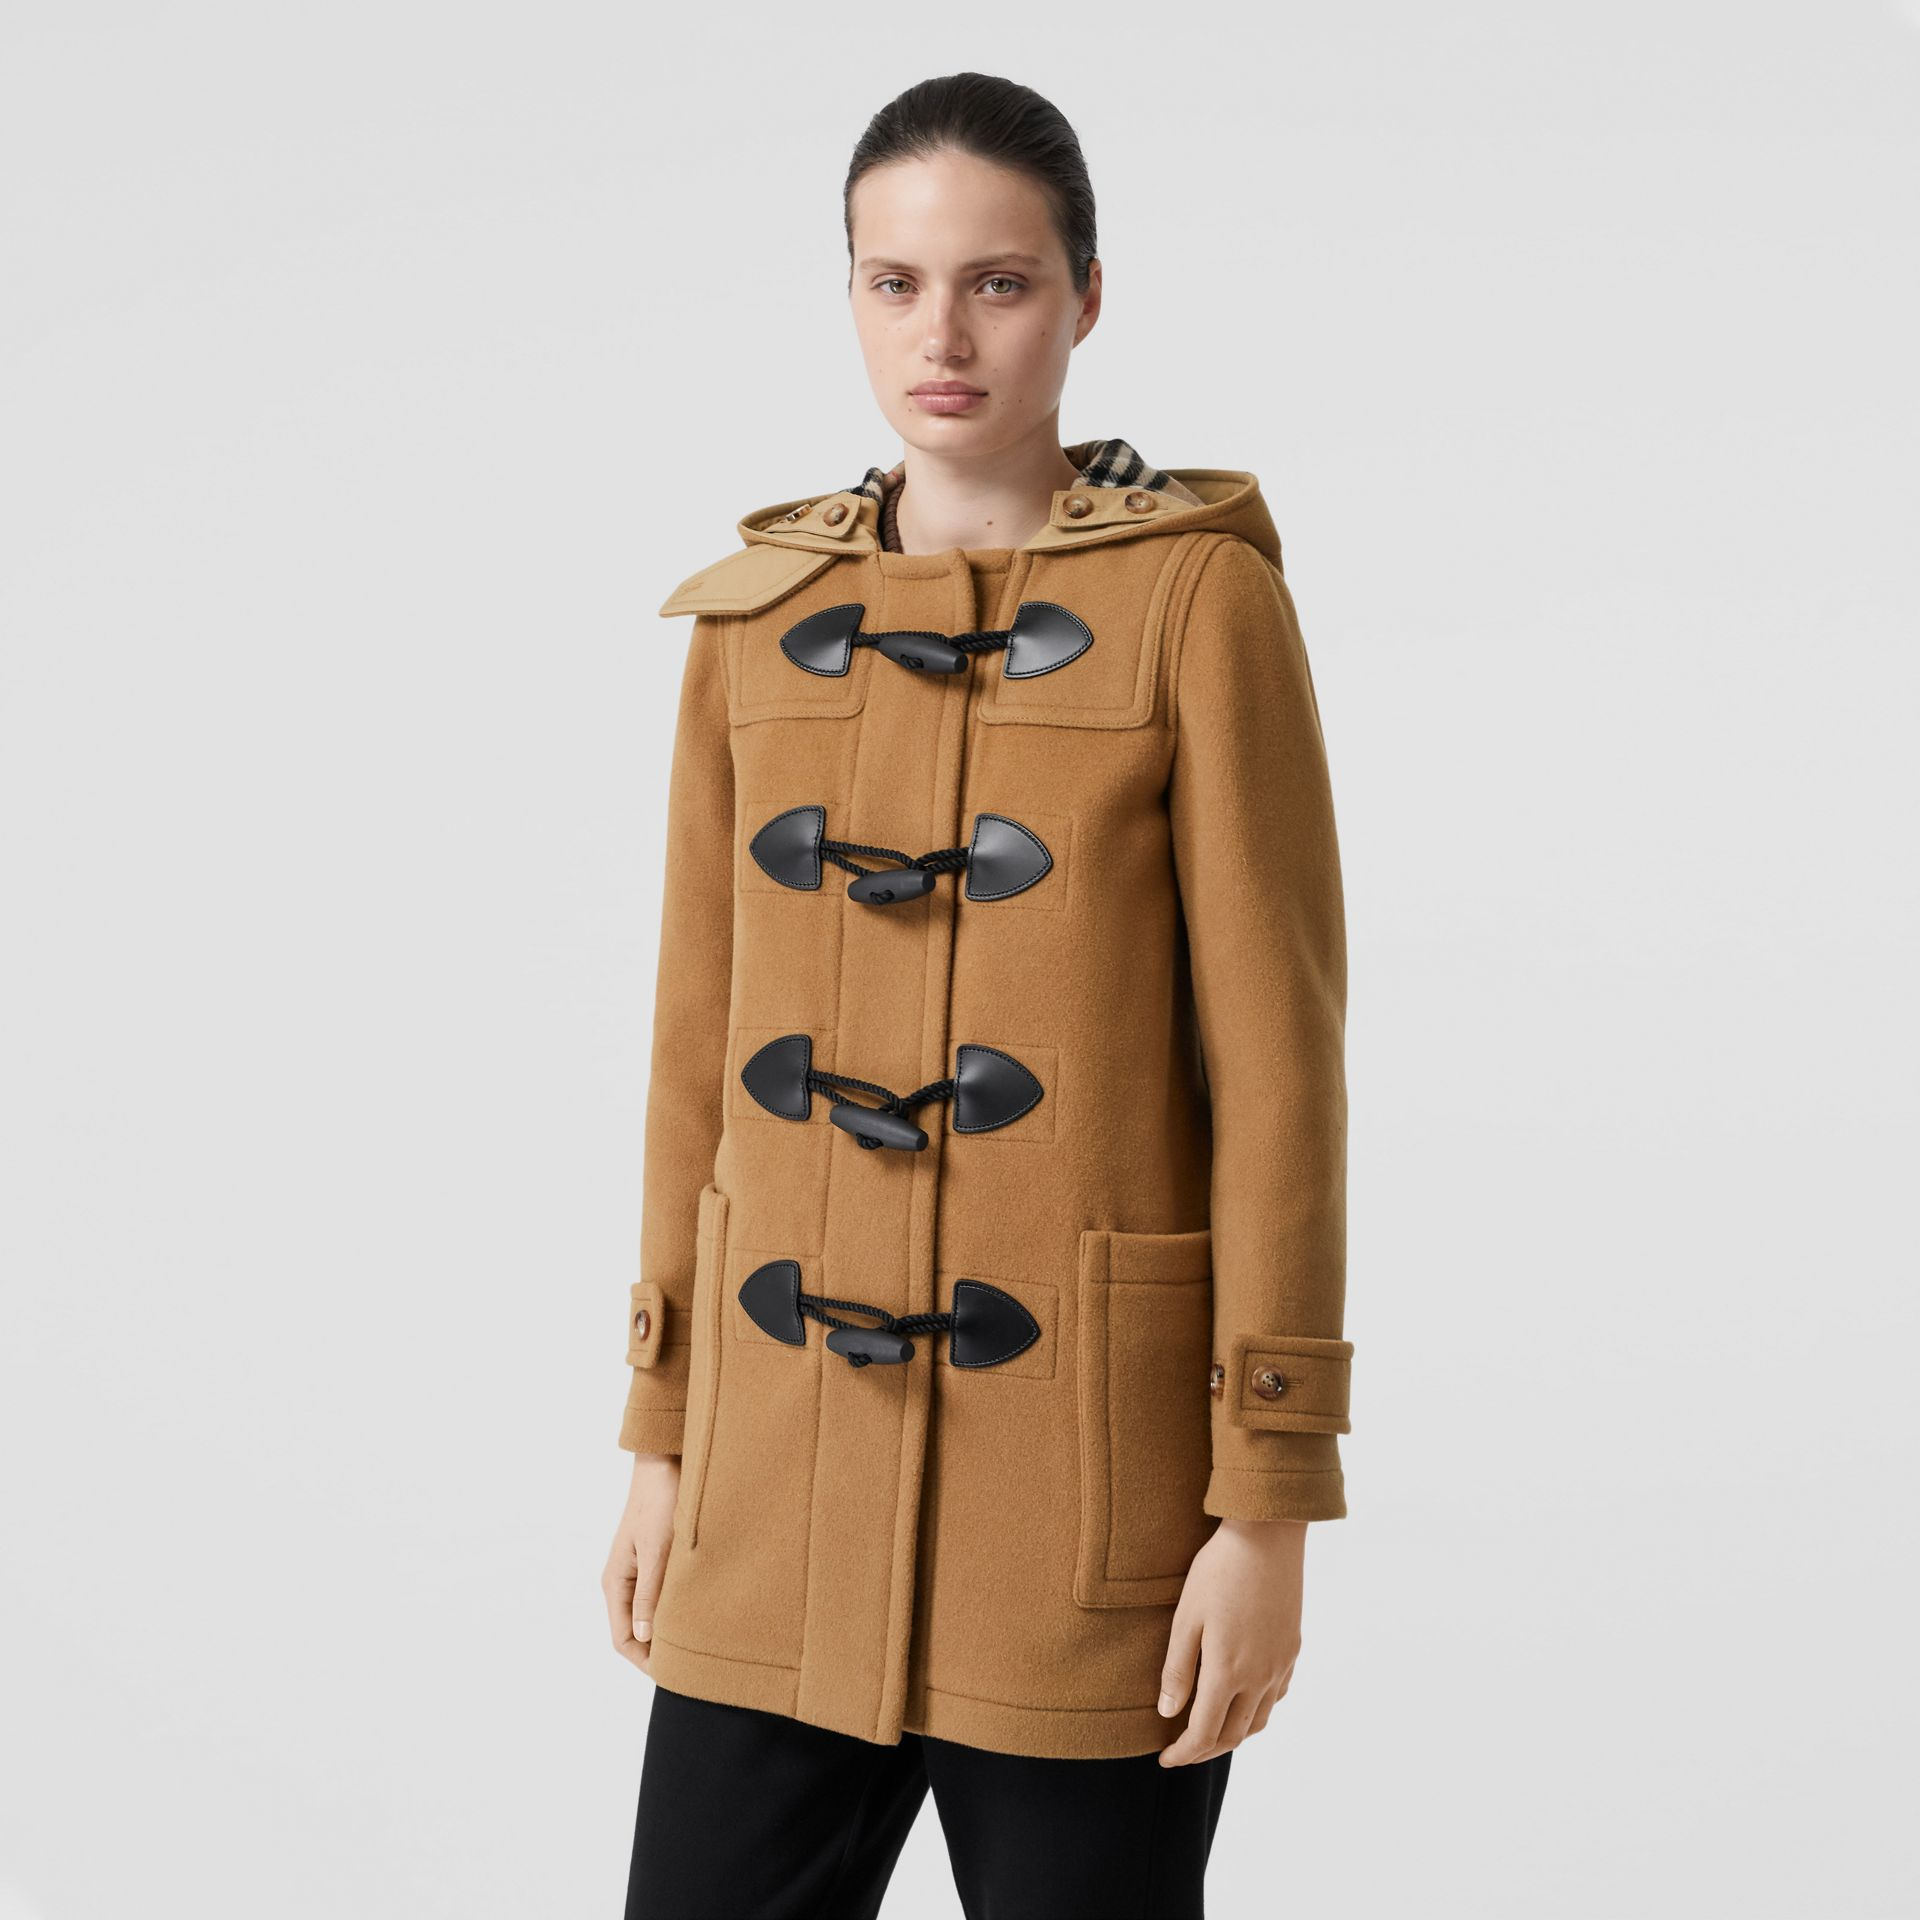 Wool Blend Duffle Coat in Mid Camel - Women | Burberry Singapore - gallery image 5